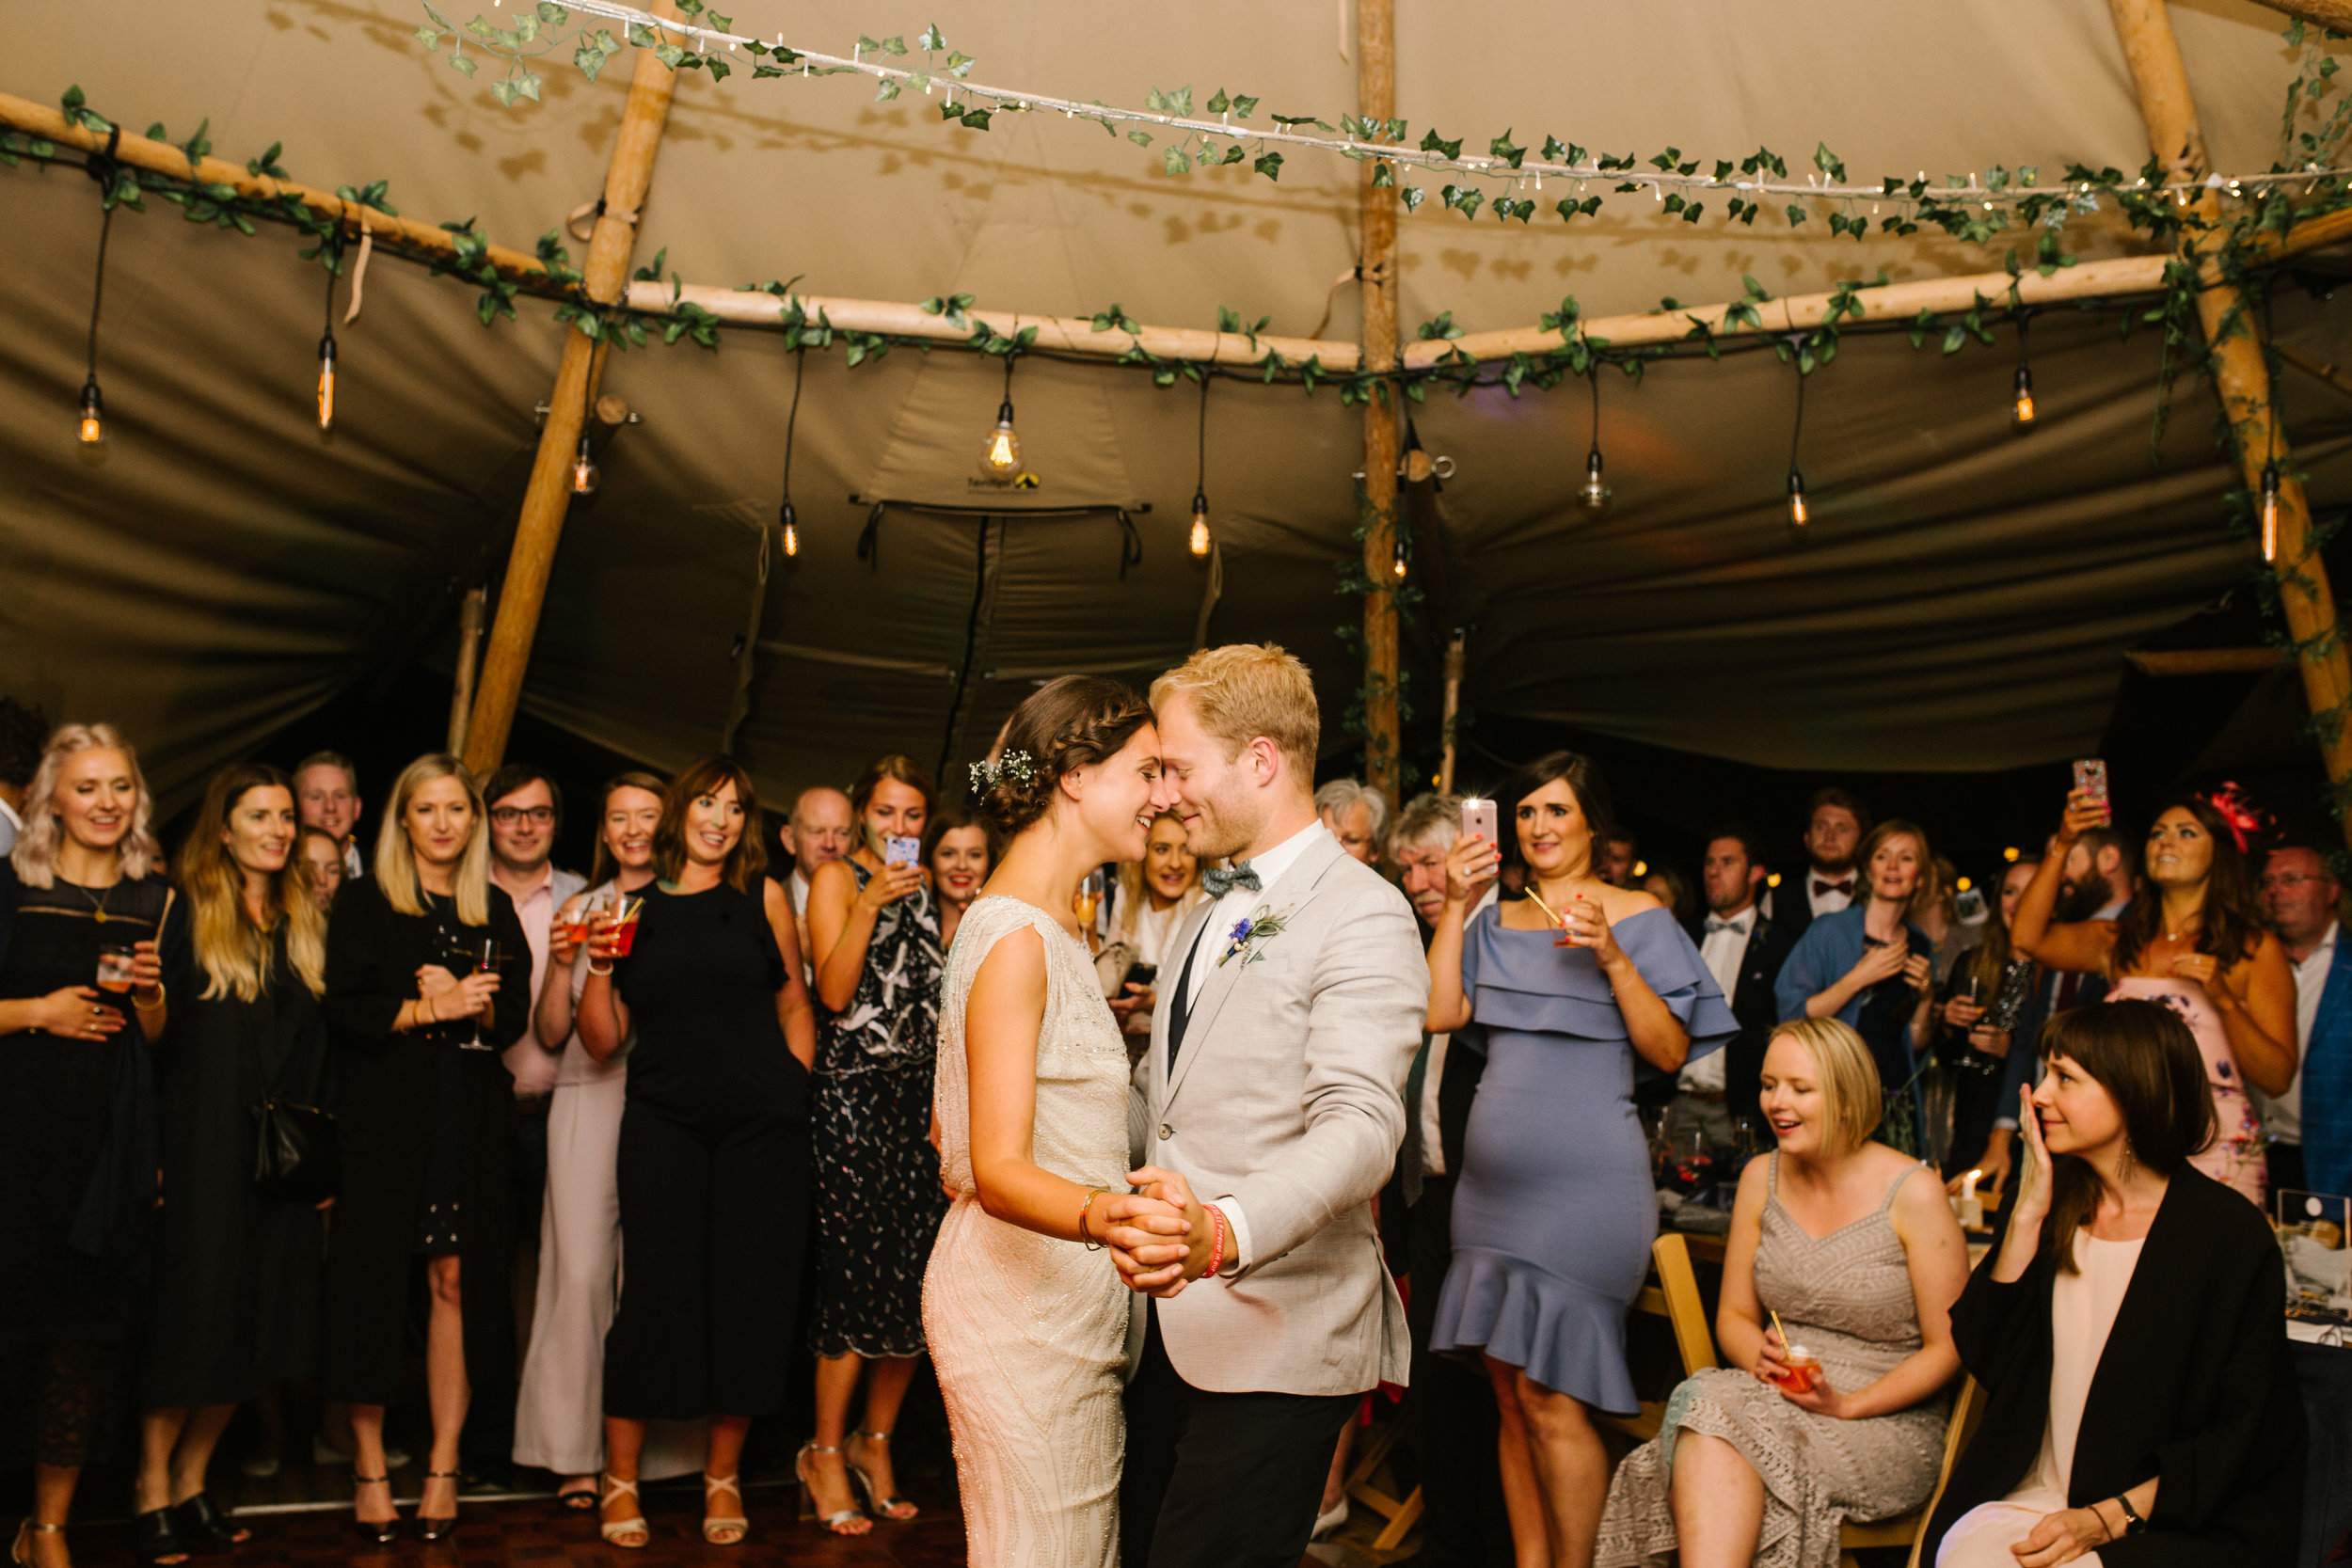 bride and groom dancing together on the dance floor for their first dance in their tipi